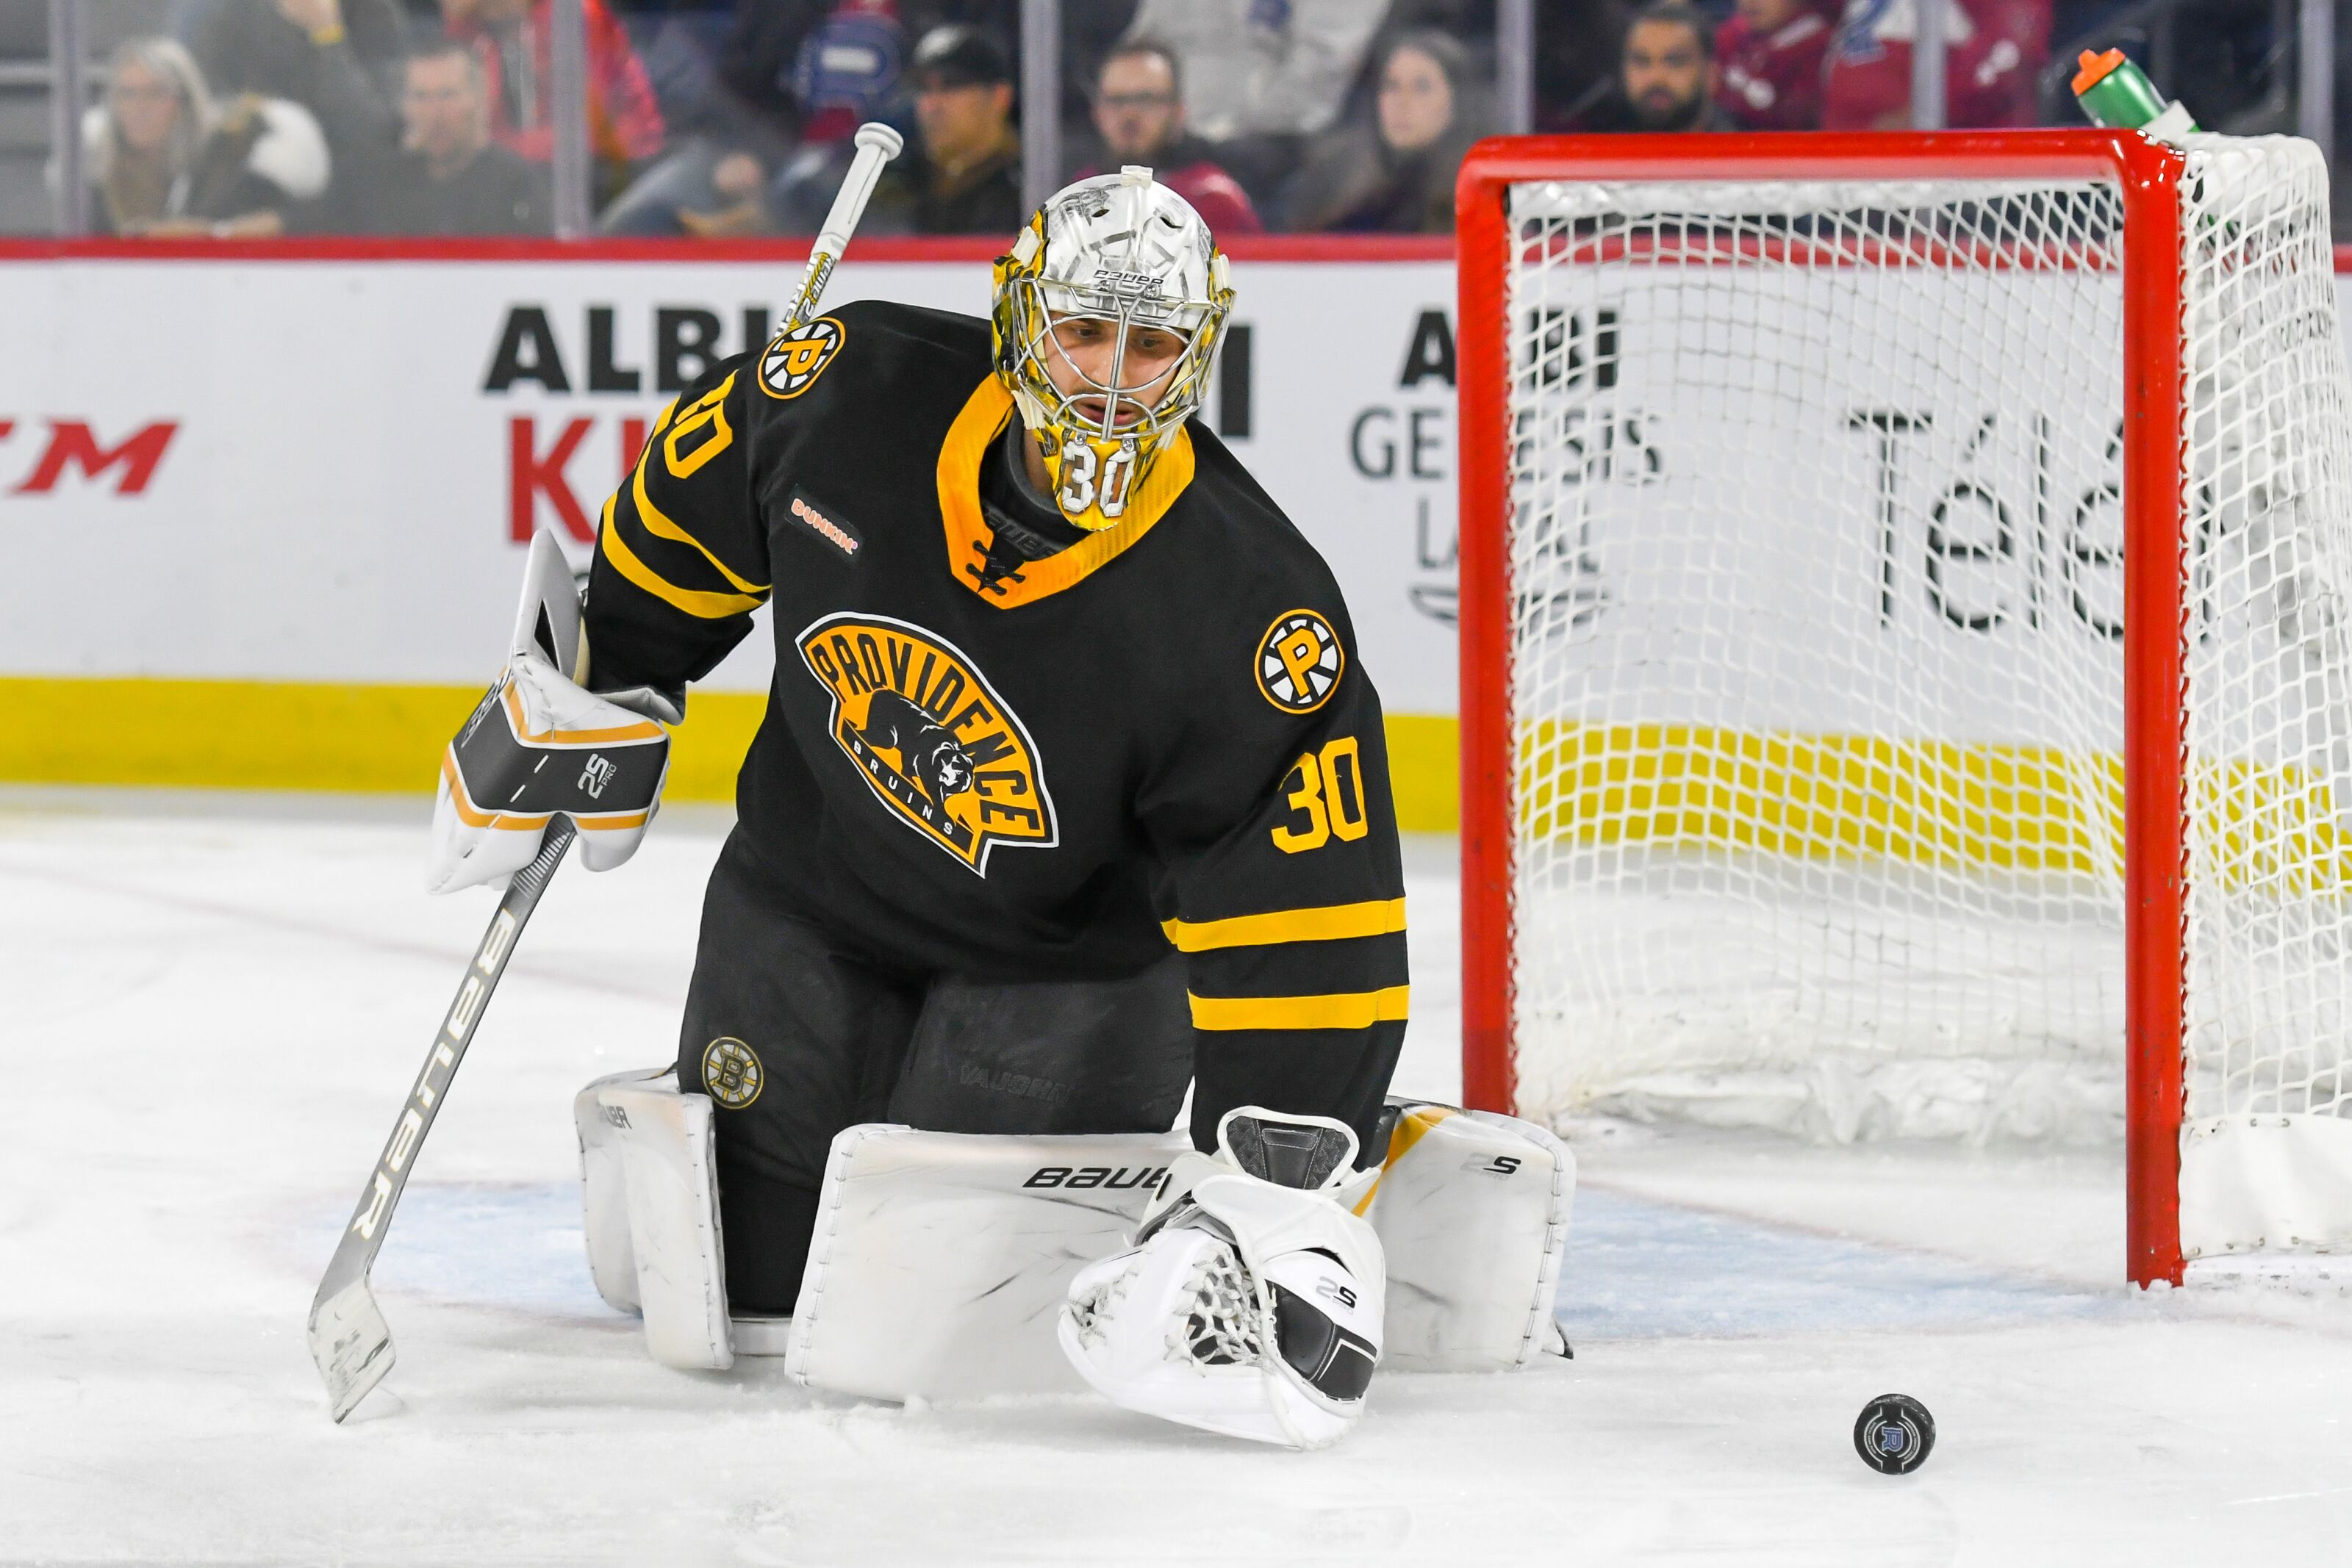 Boston Bruins: Dan Vladar showing that the future is in safe hands